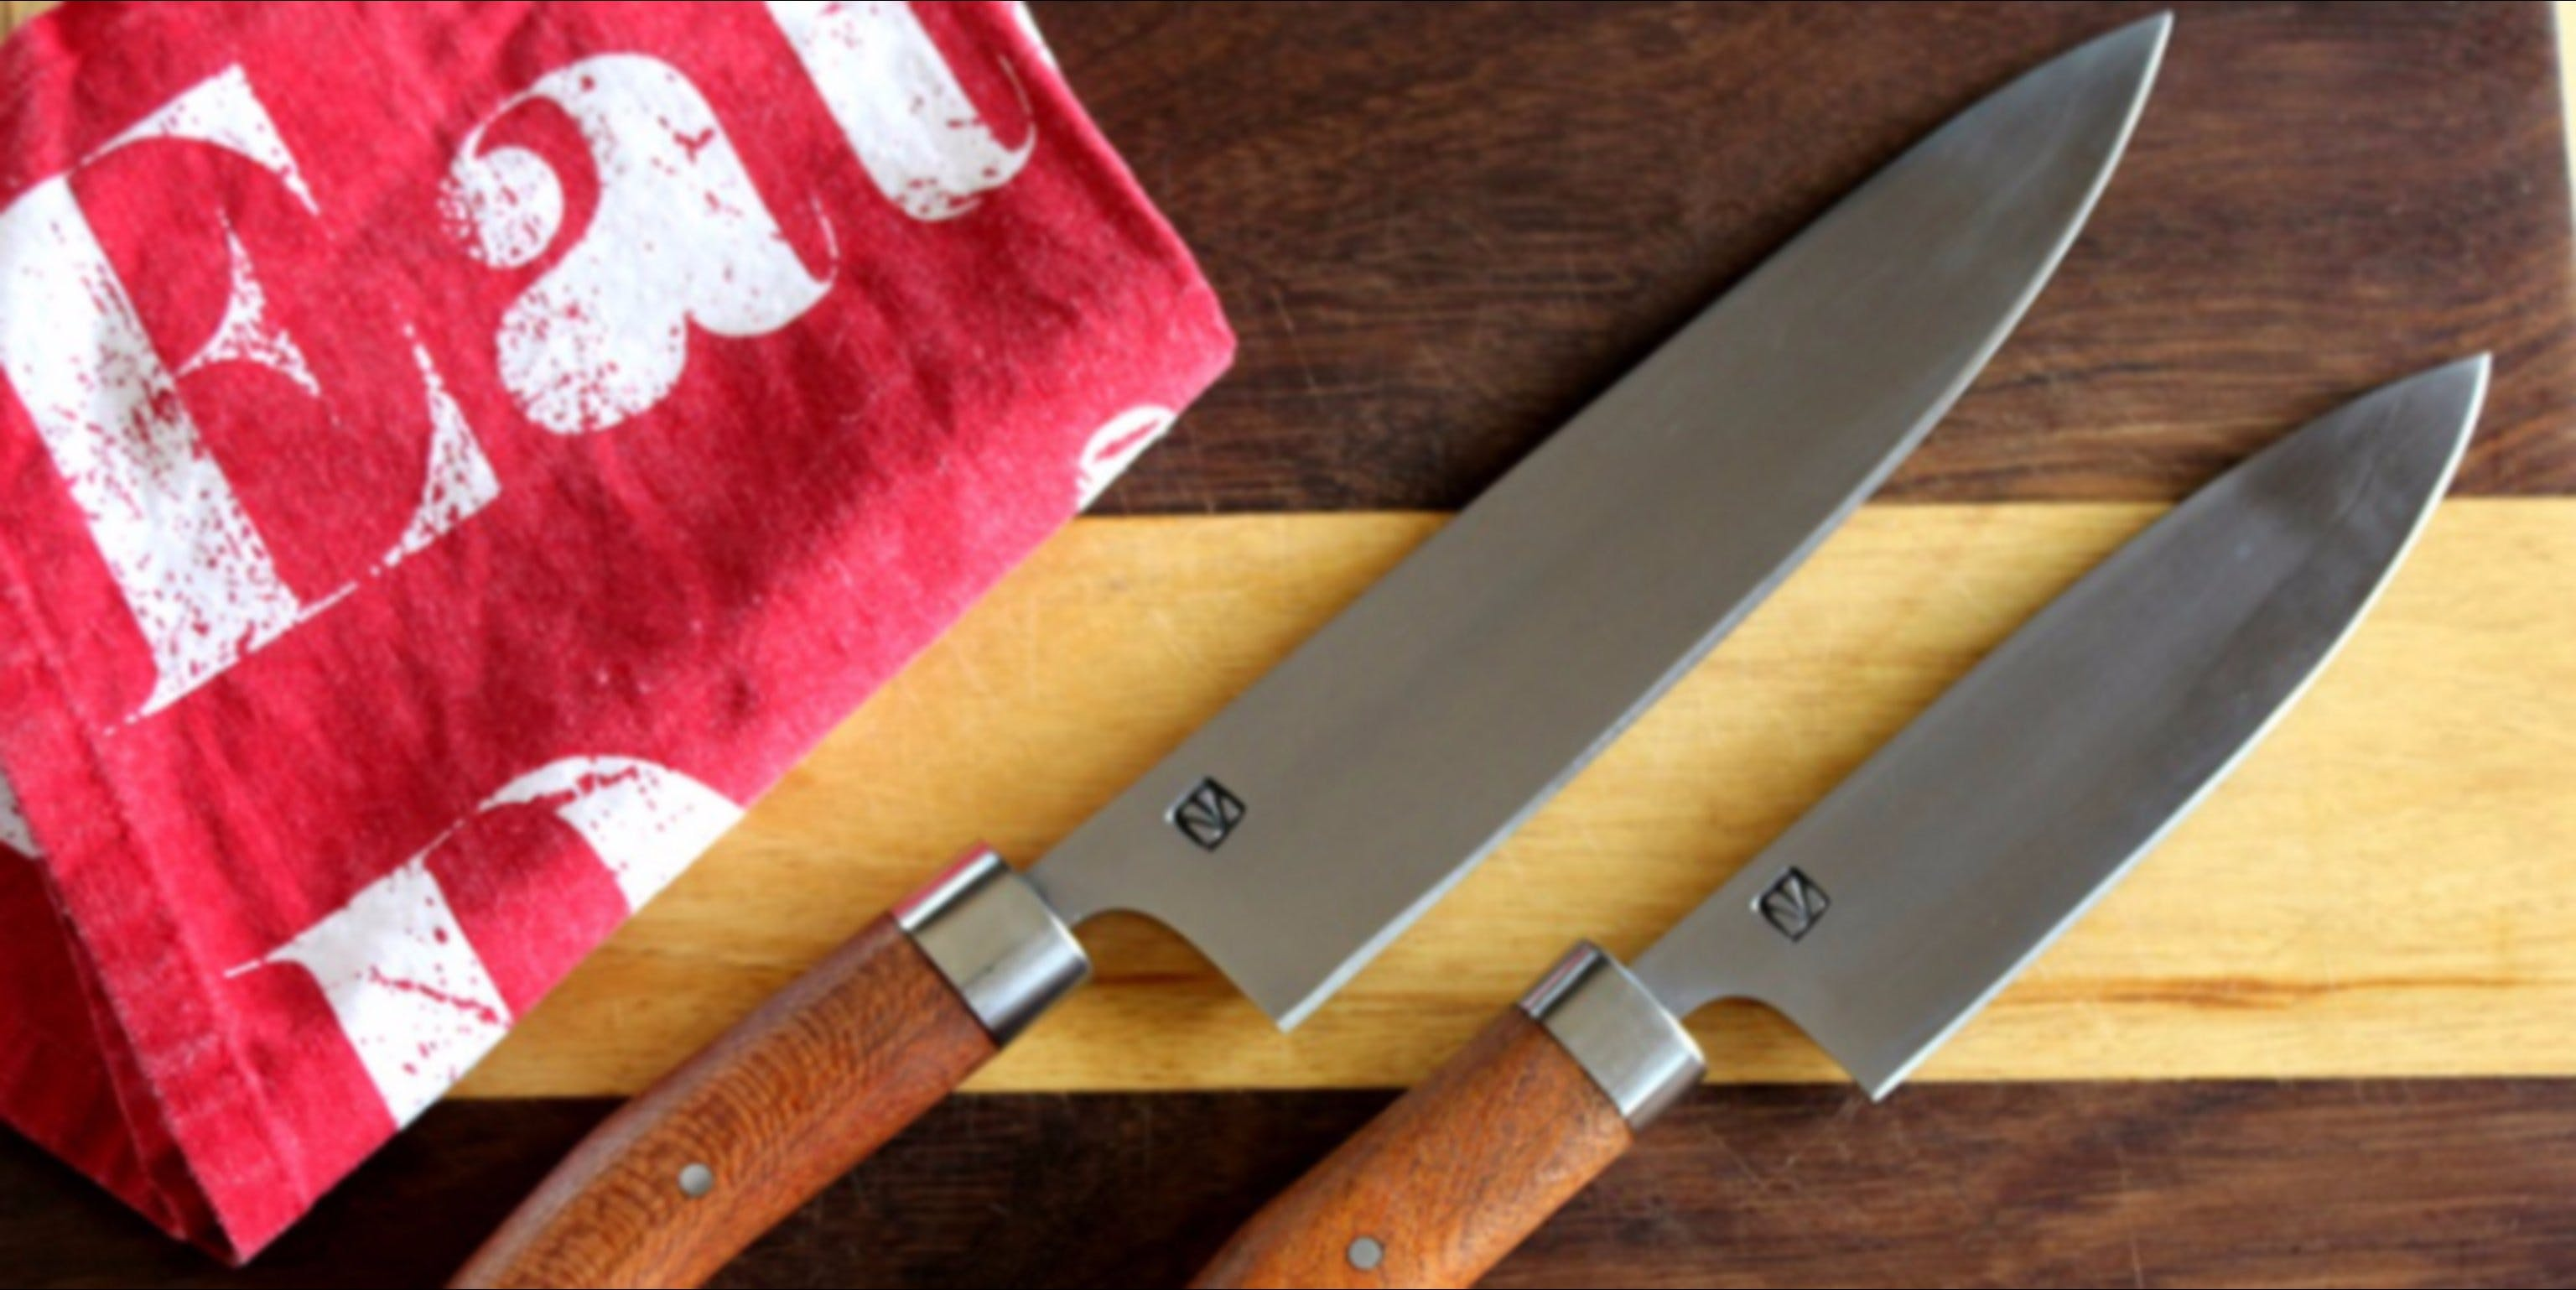 South Coast Knife Show and Rare Artisan Expo - Carnarvon Accommodation